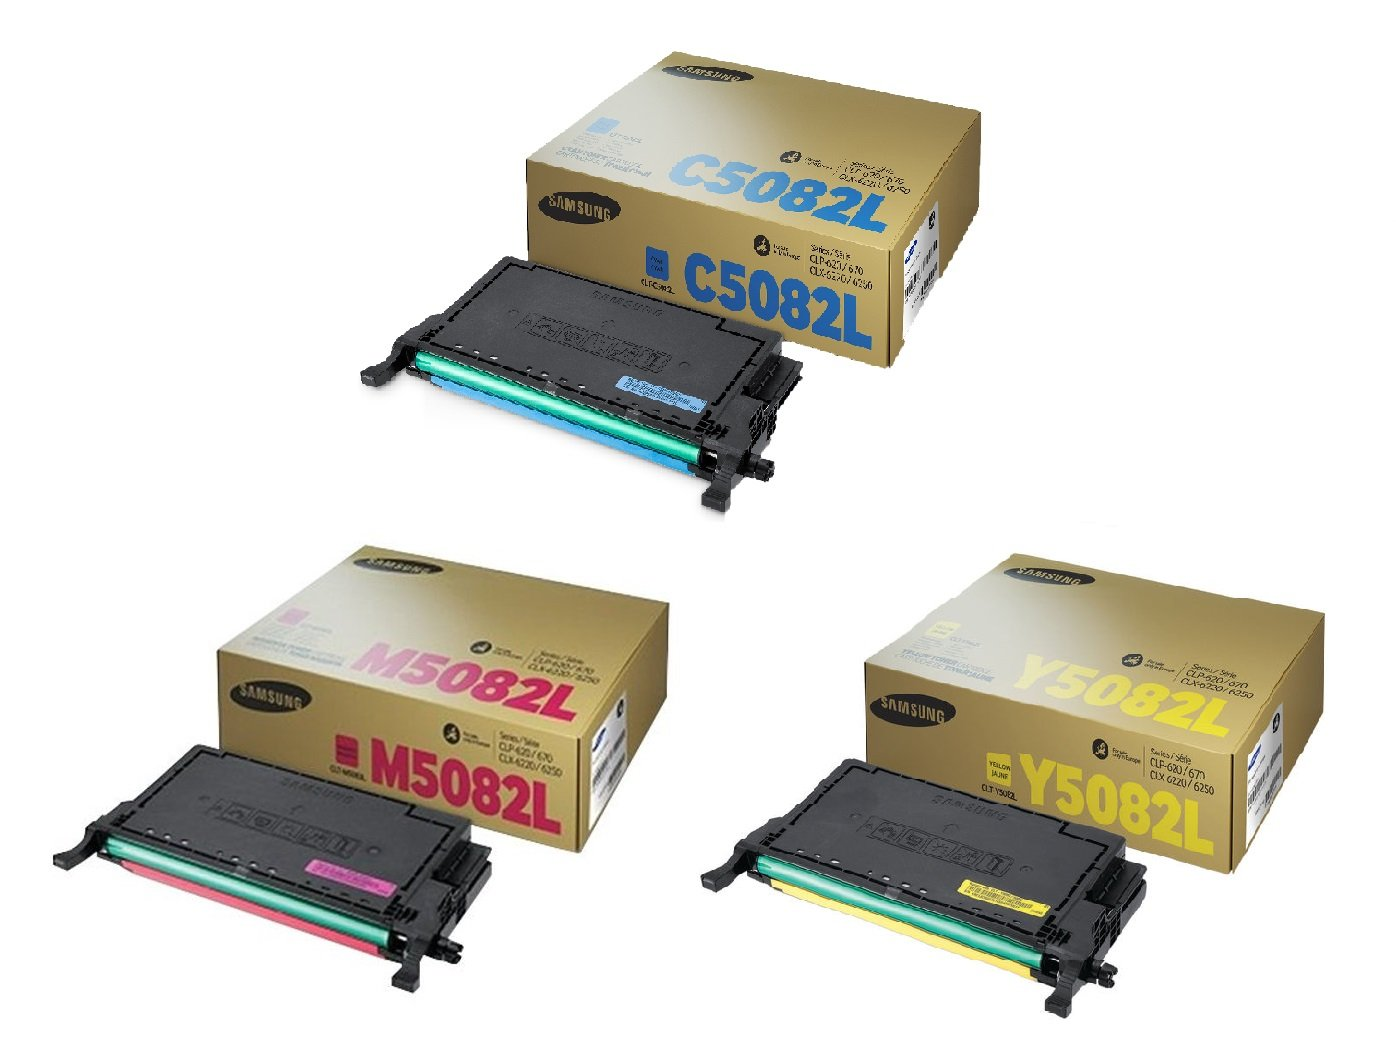 Genuine High Capacity 3 Colour Samsung 5082L Toner Cartridge Multipack (CLT-C5082L/M5082L/Y5082L)